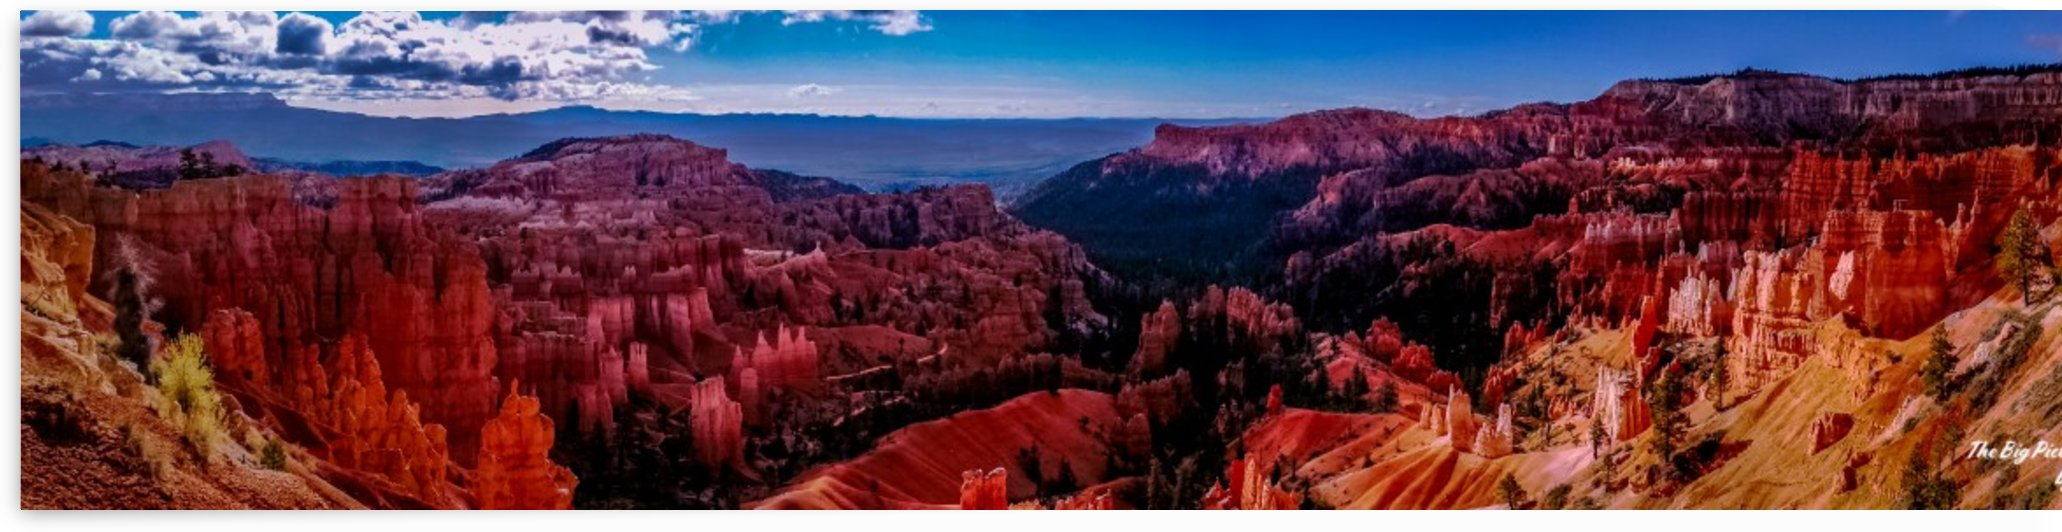 Bryce Canyon Sunrise Point 2 by The Big Picture by JD